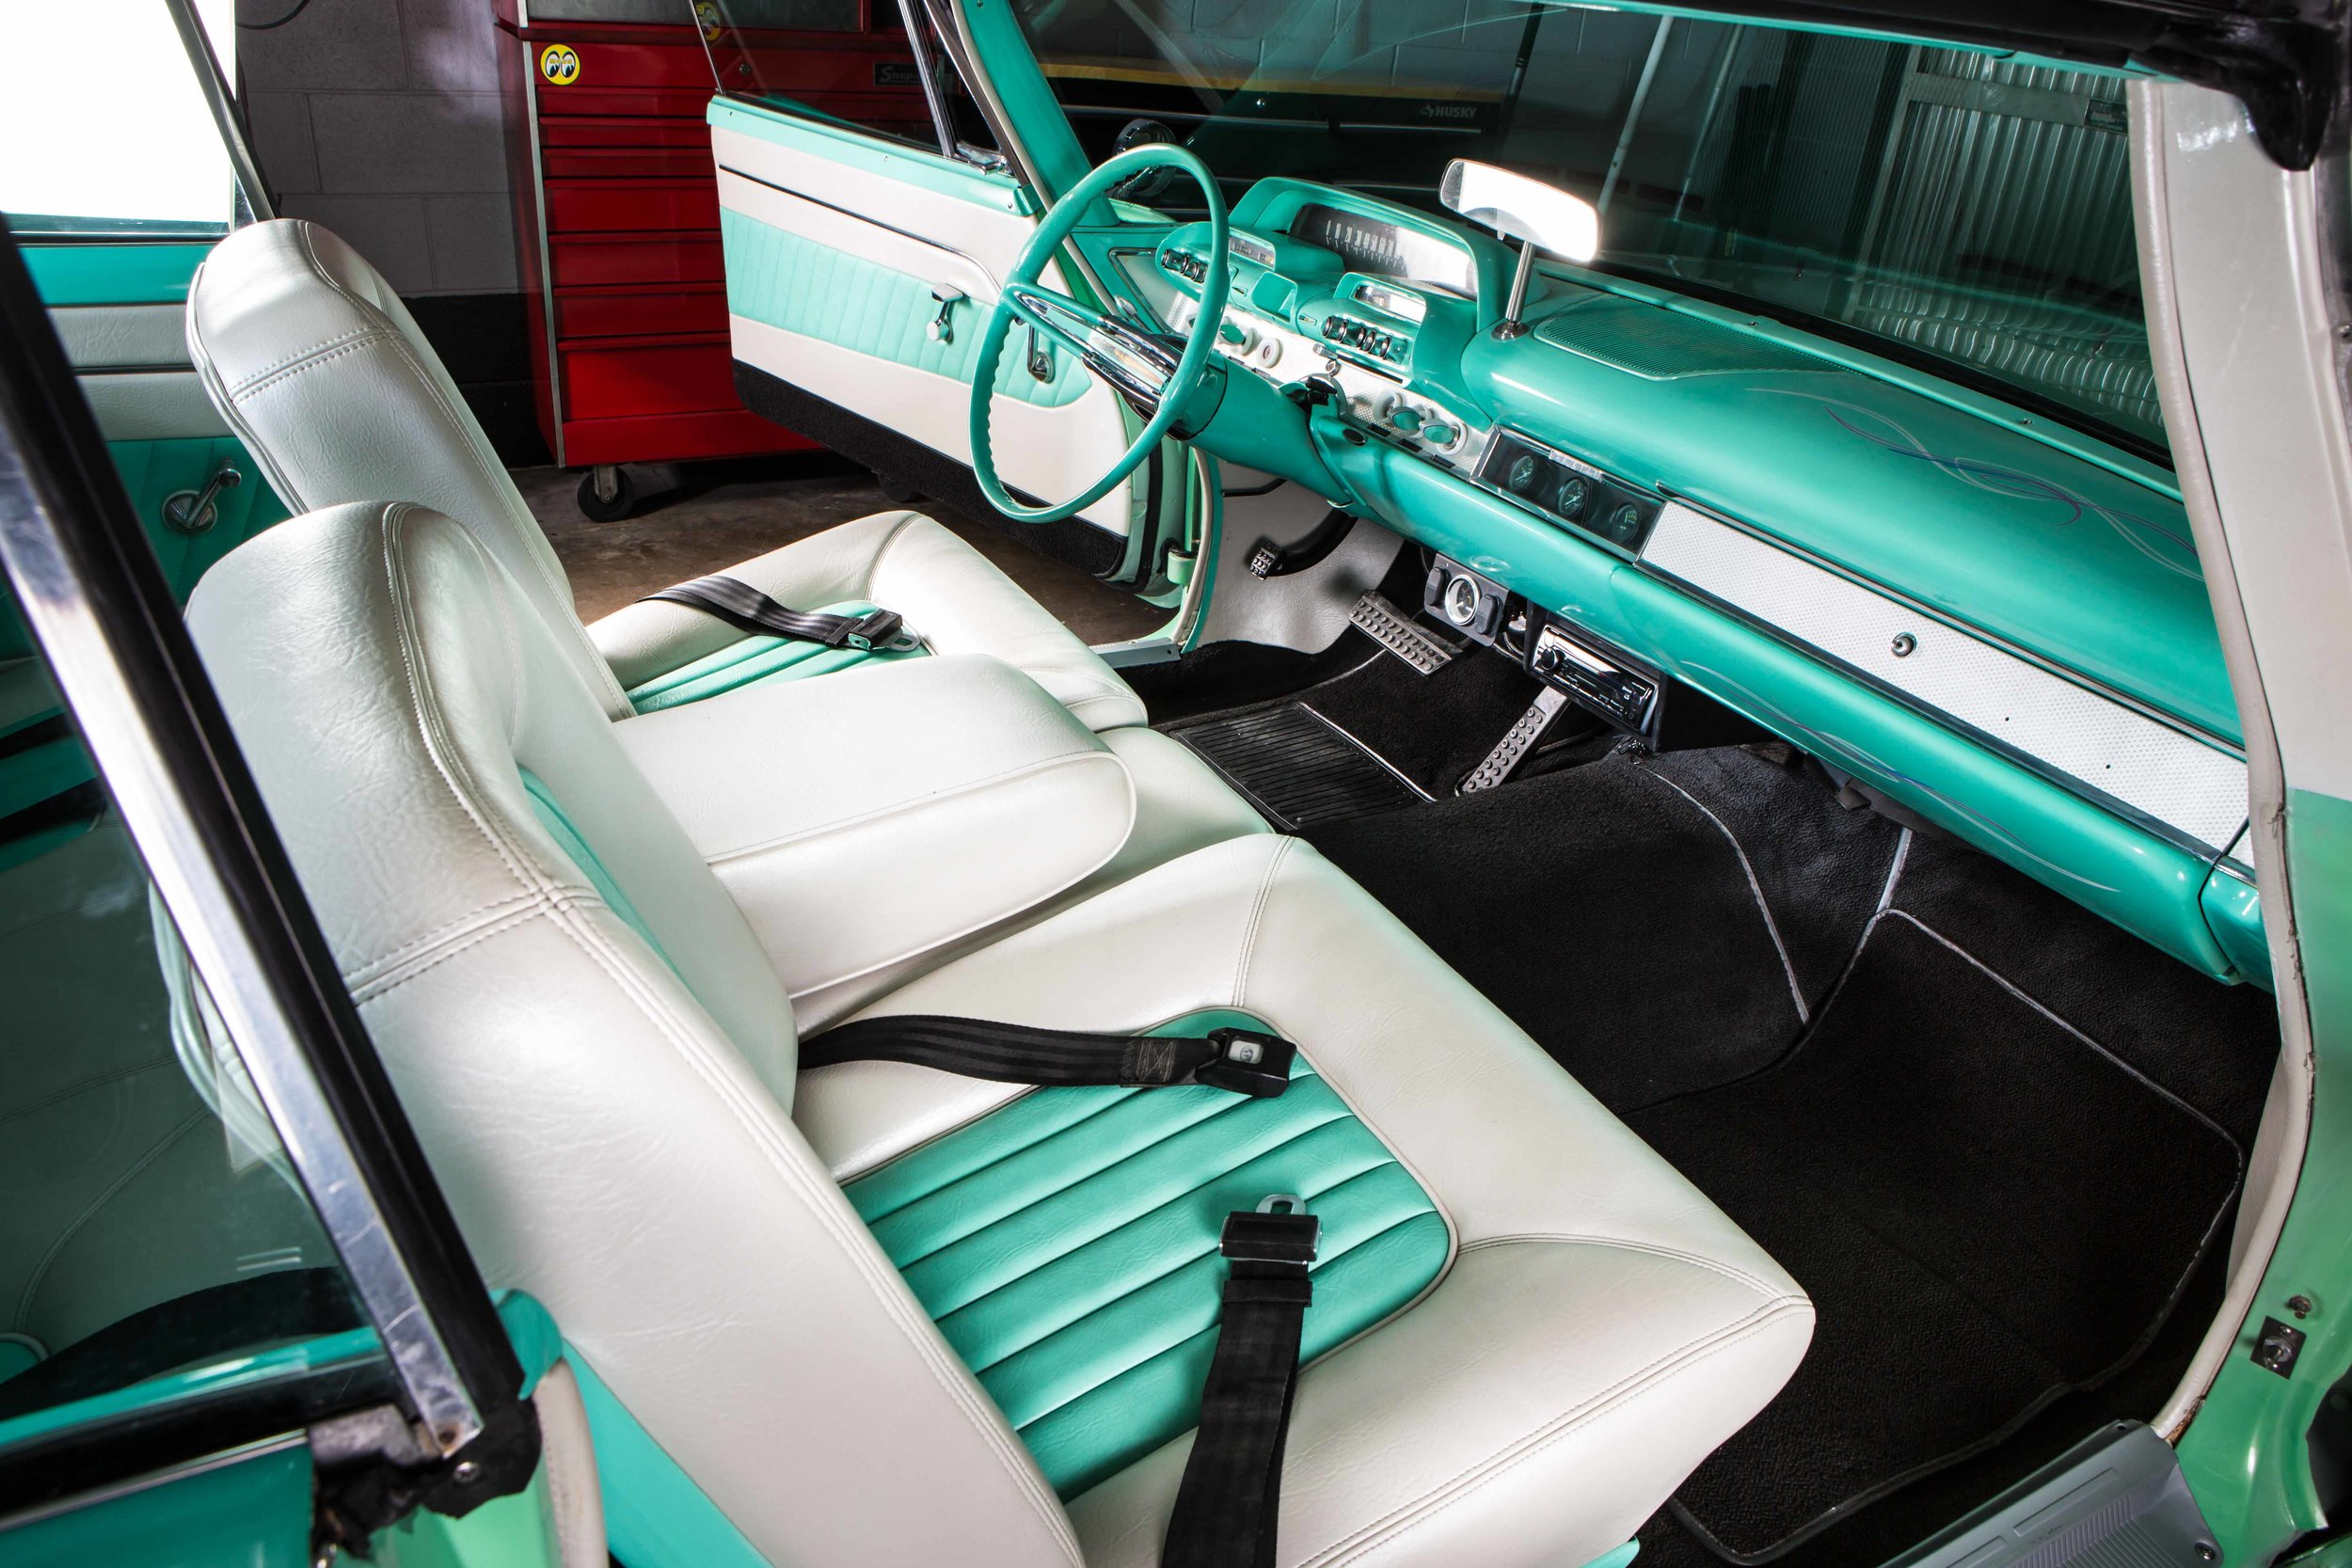 Anaheim Rod and Custom Island Girl 1960 De Soto Studio (20 of 104).jpg